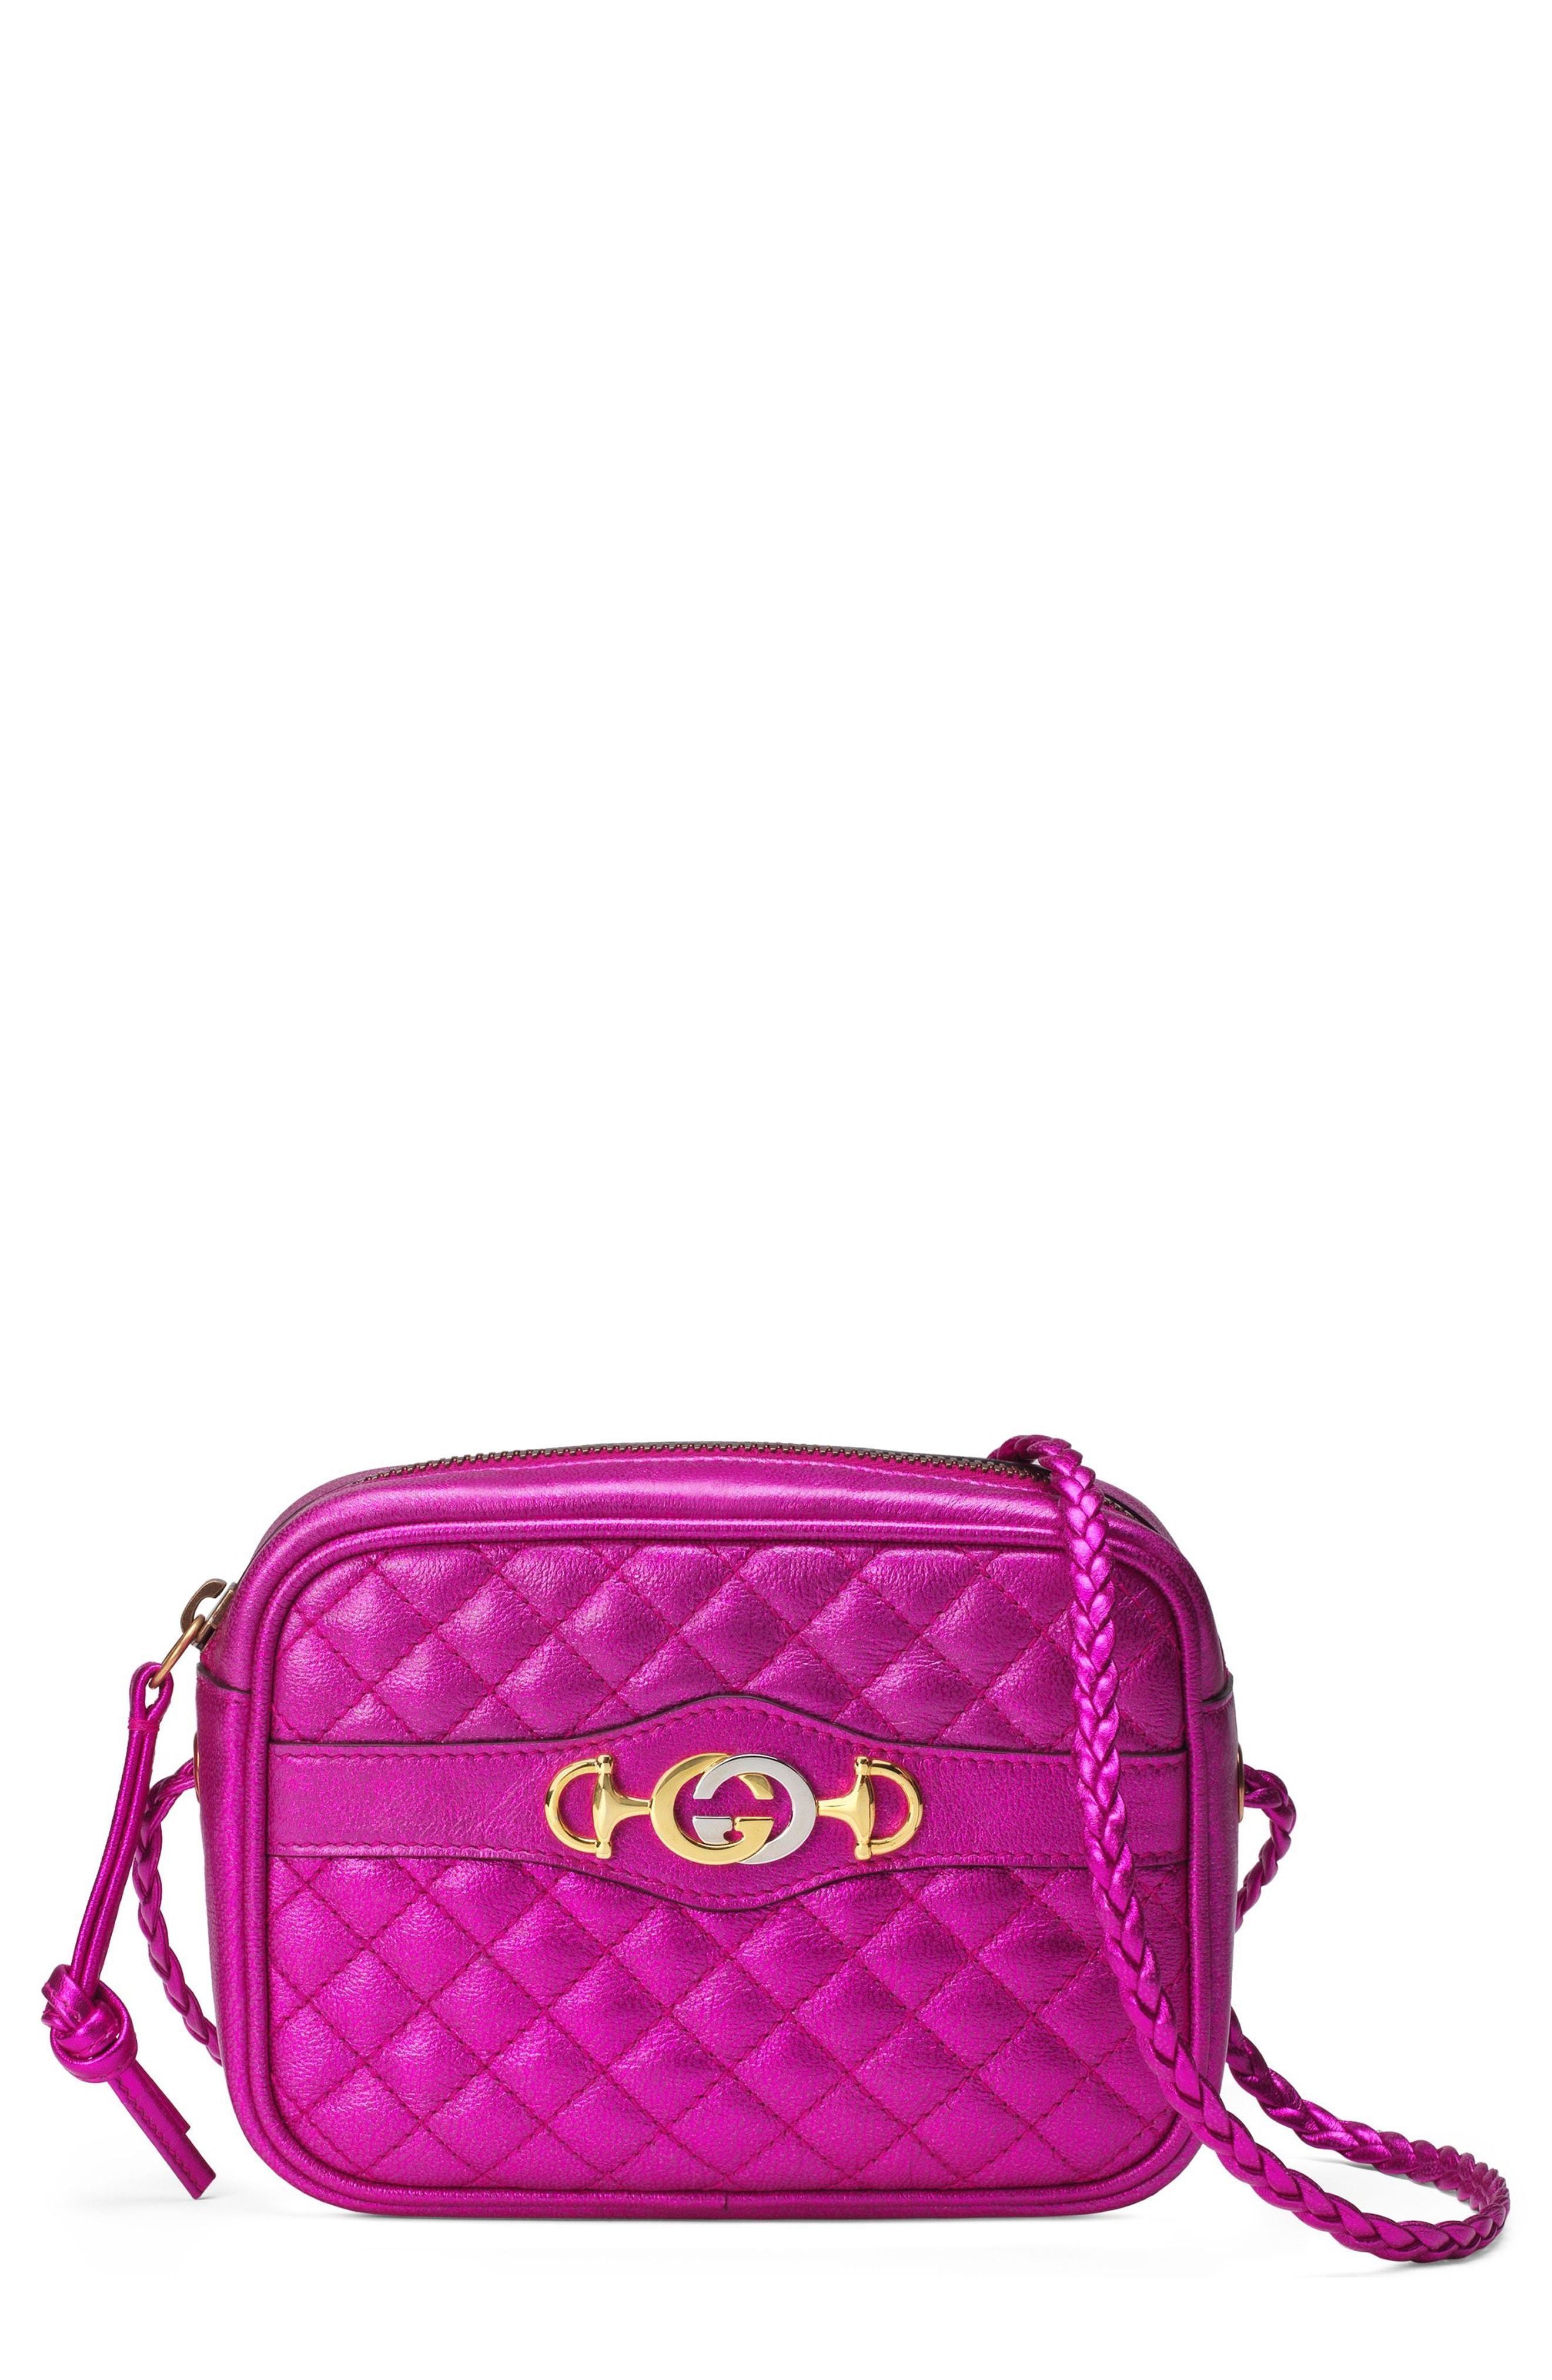 e24aadc5ad1513 ... Pink Quilted Leather Crossbody Bags Gucci Quilted Metallic Leather  Camera Bag